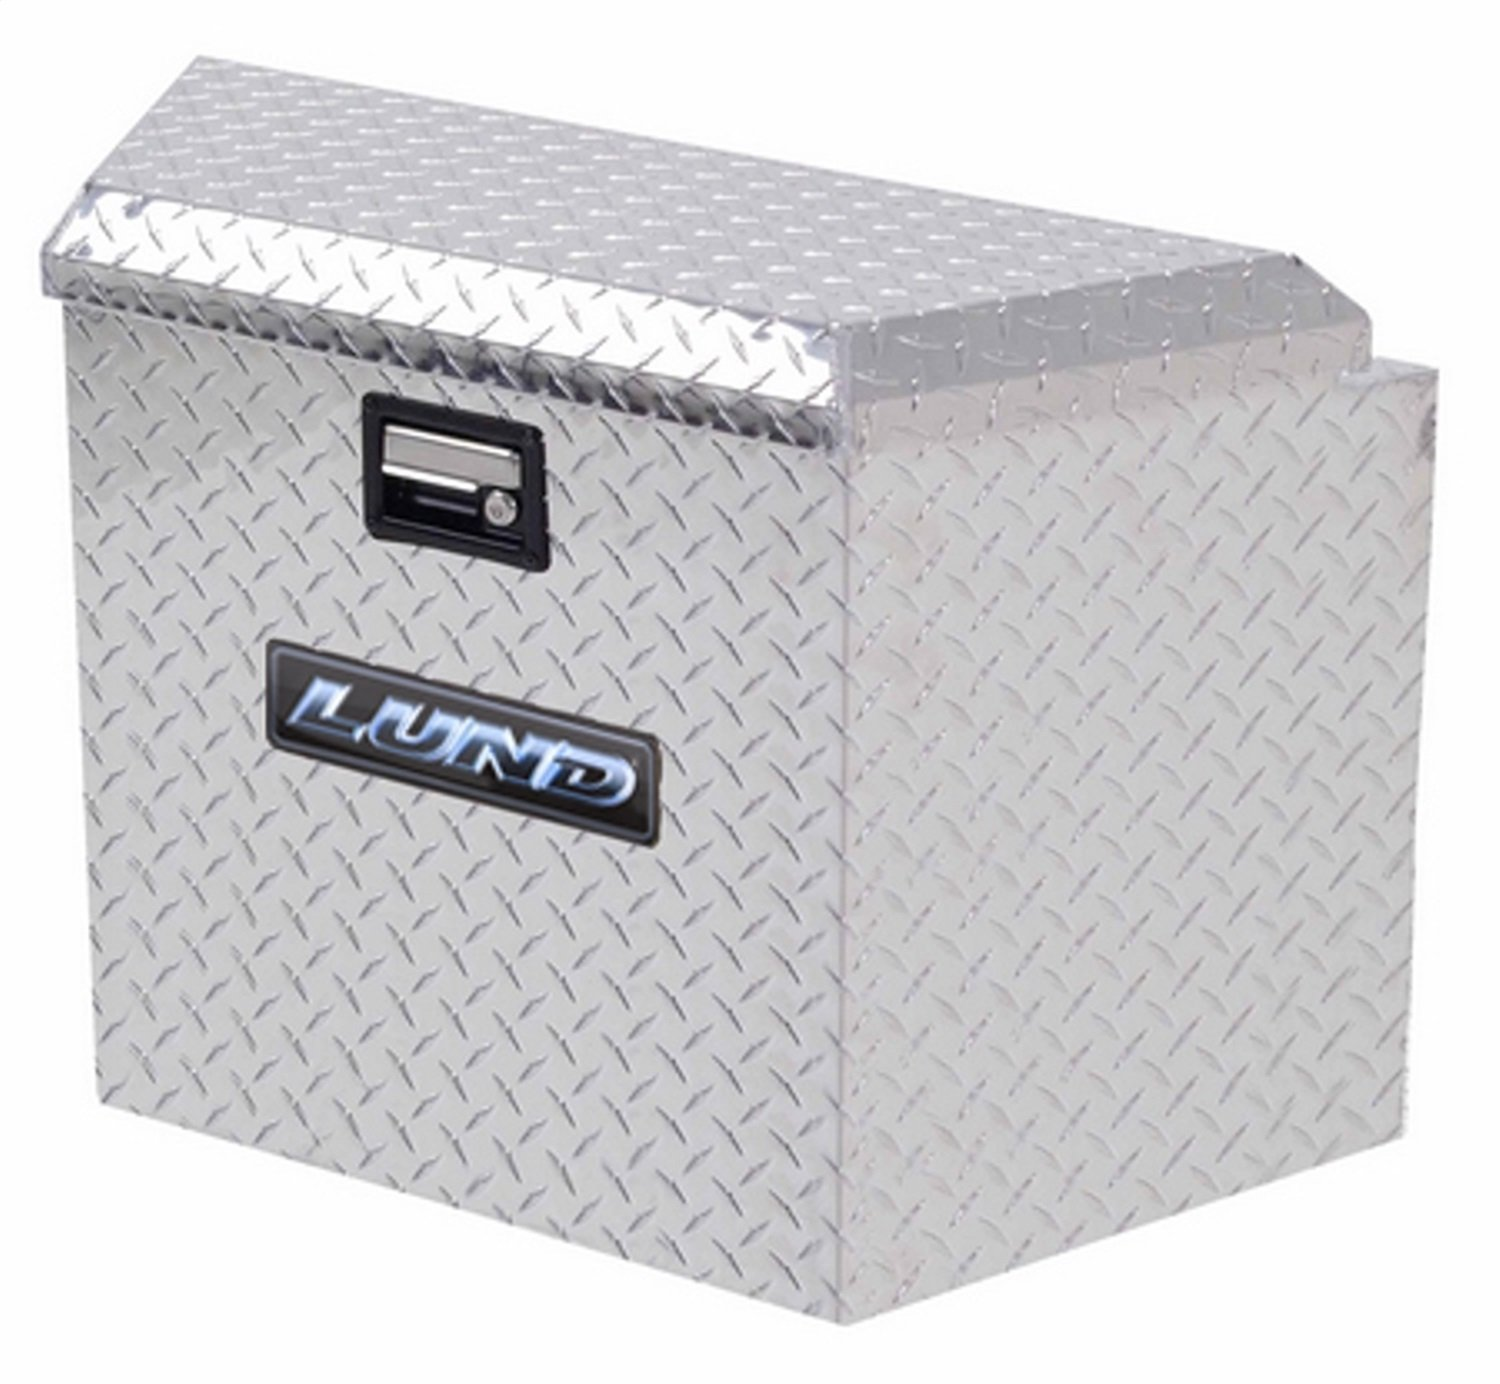 Silver Diamond Plated Lund//Tradesman 6120 16-Inch Aluminum Trailer Tongue Truck Box